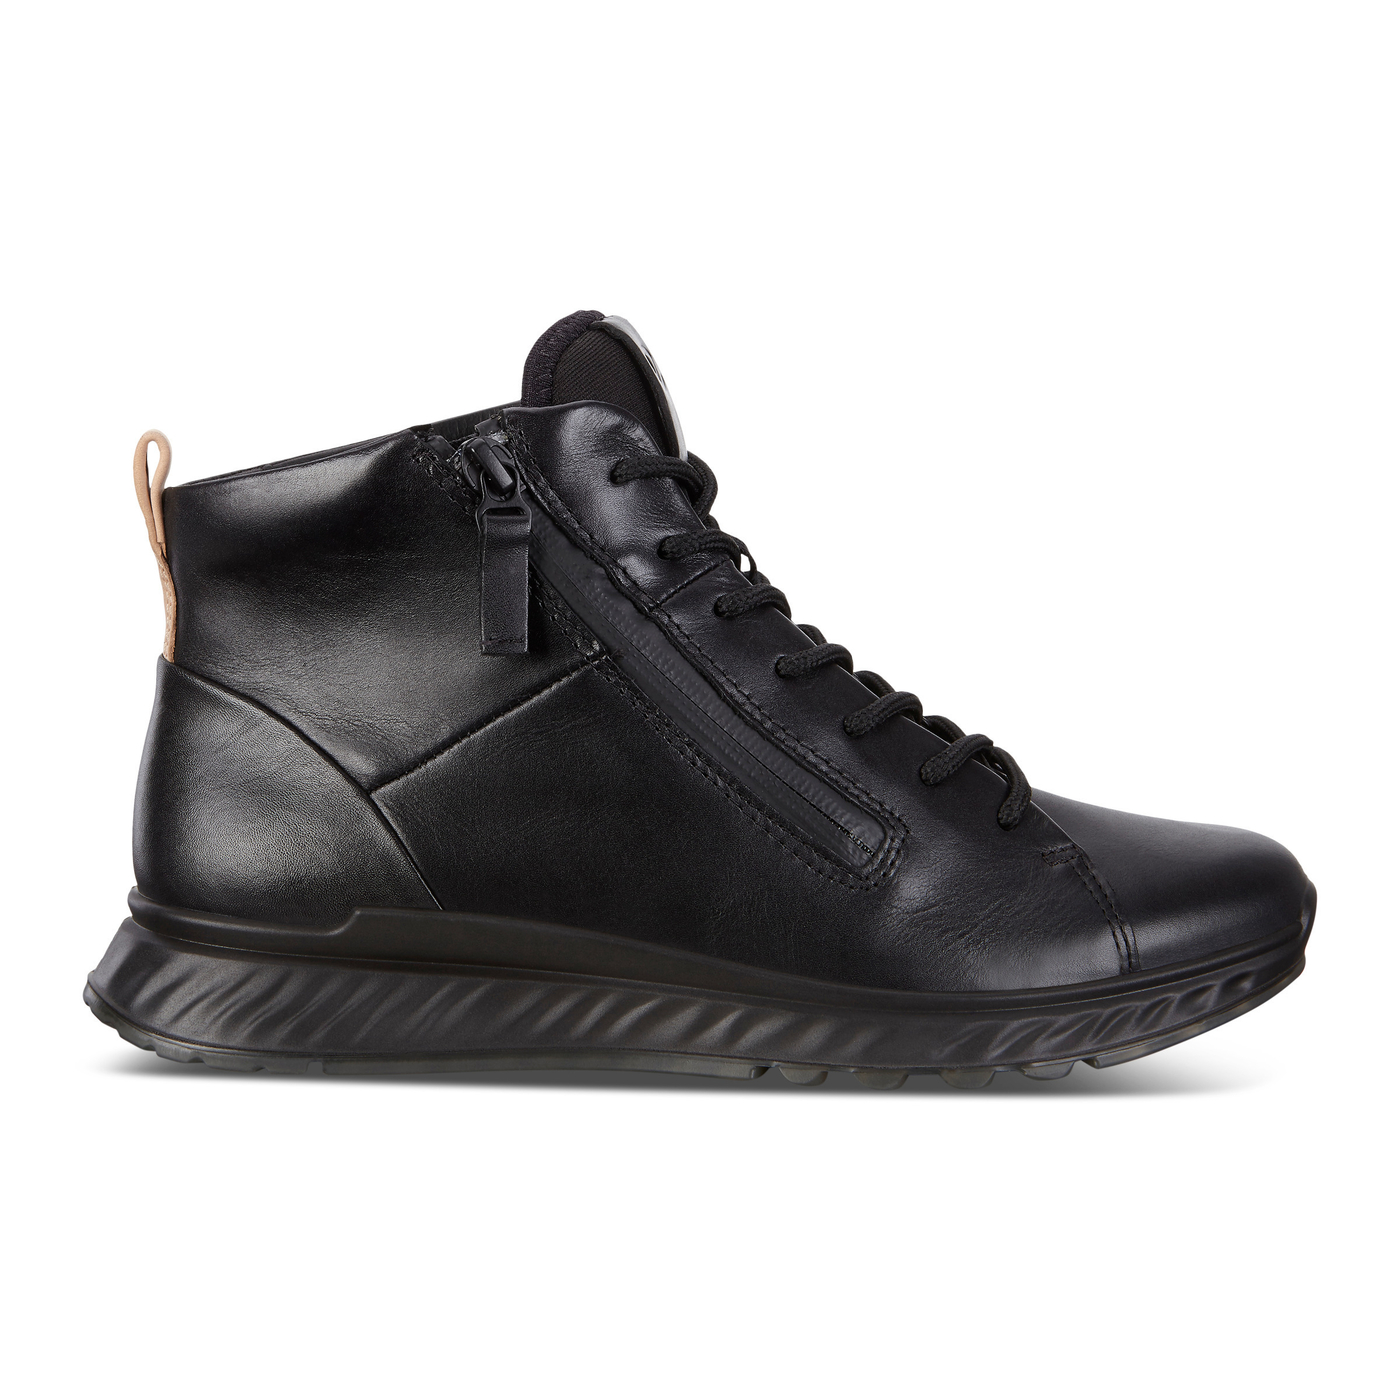 ECCO ST1 Womens High Cut Luxuary Sneaker Lace with Zip